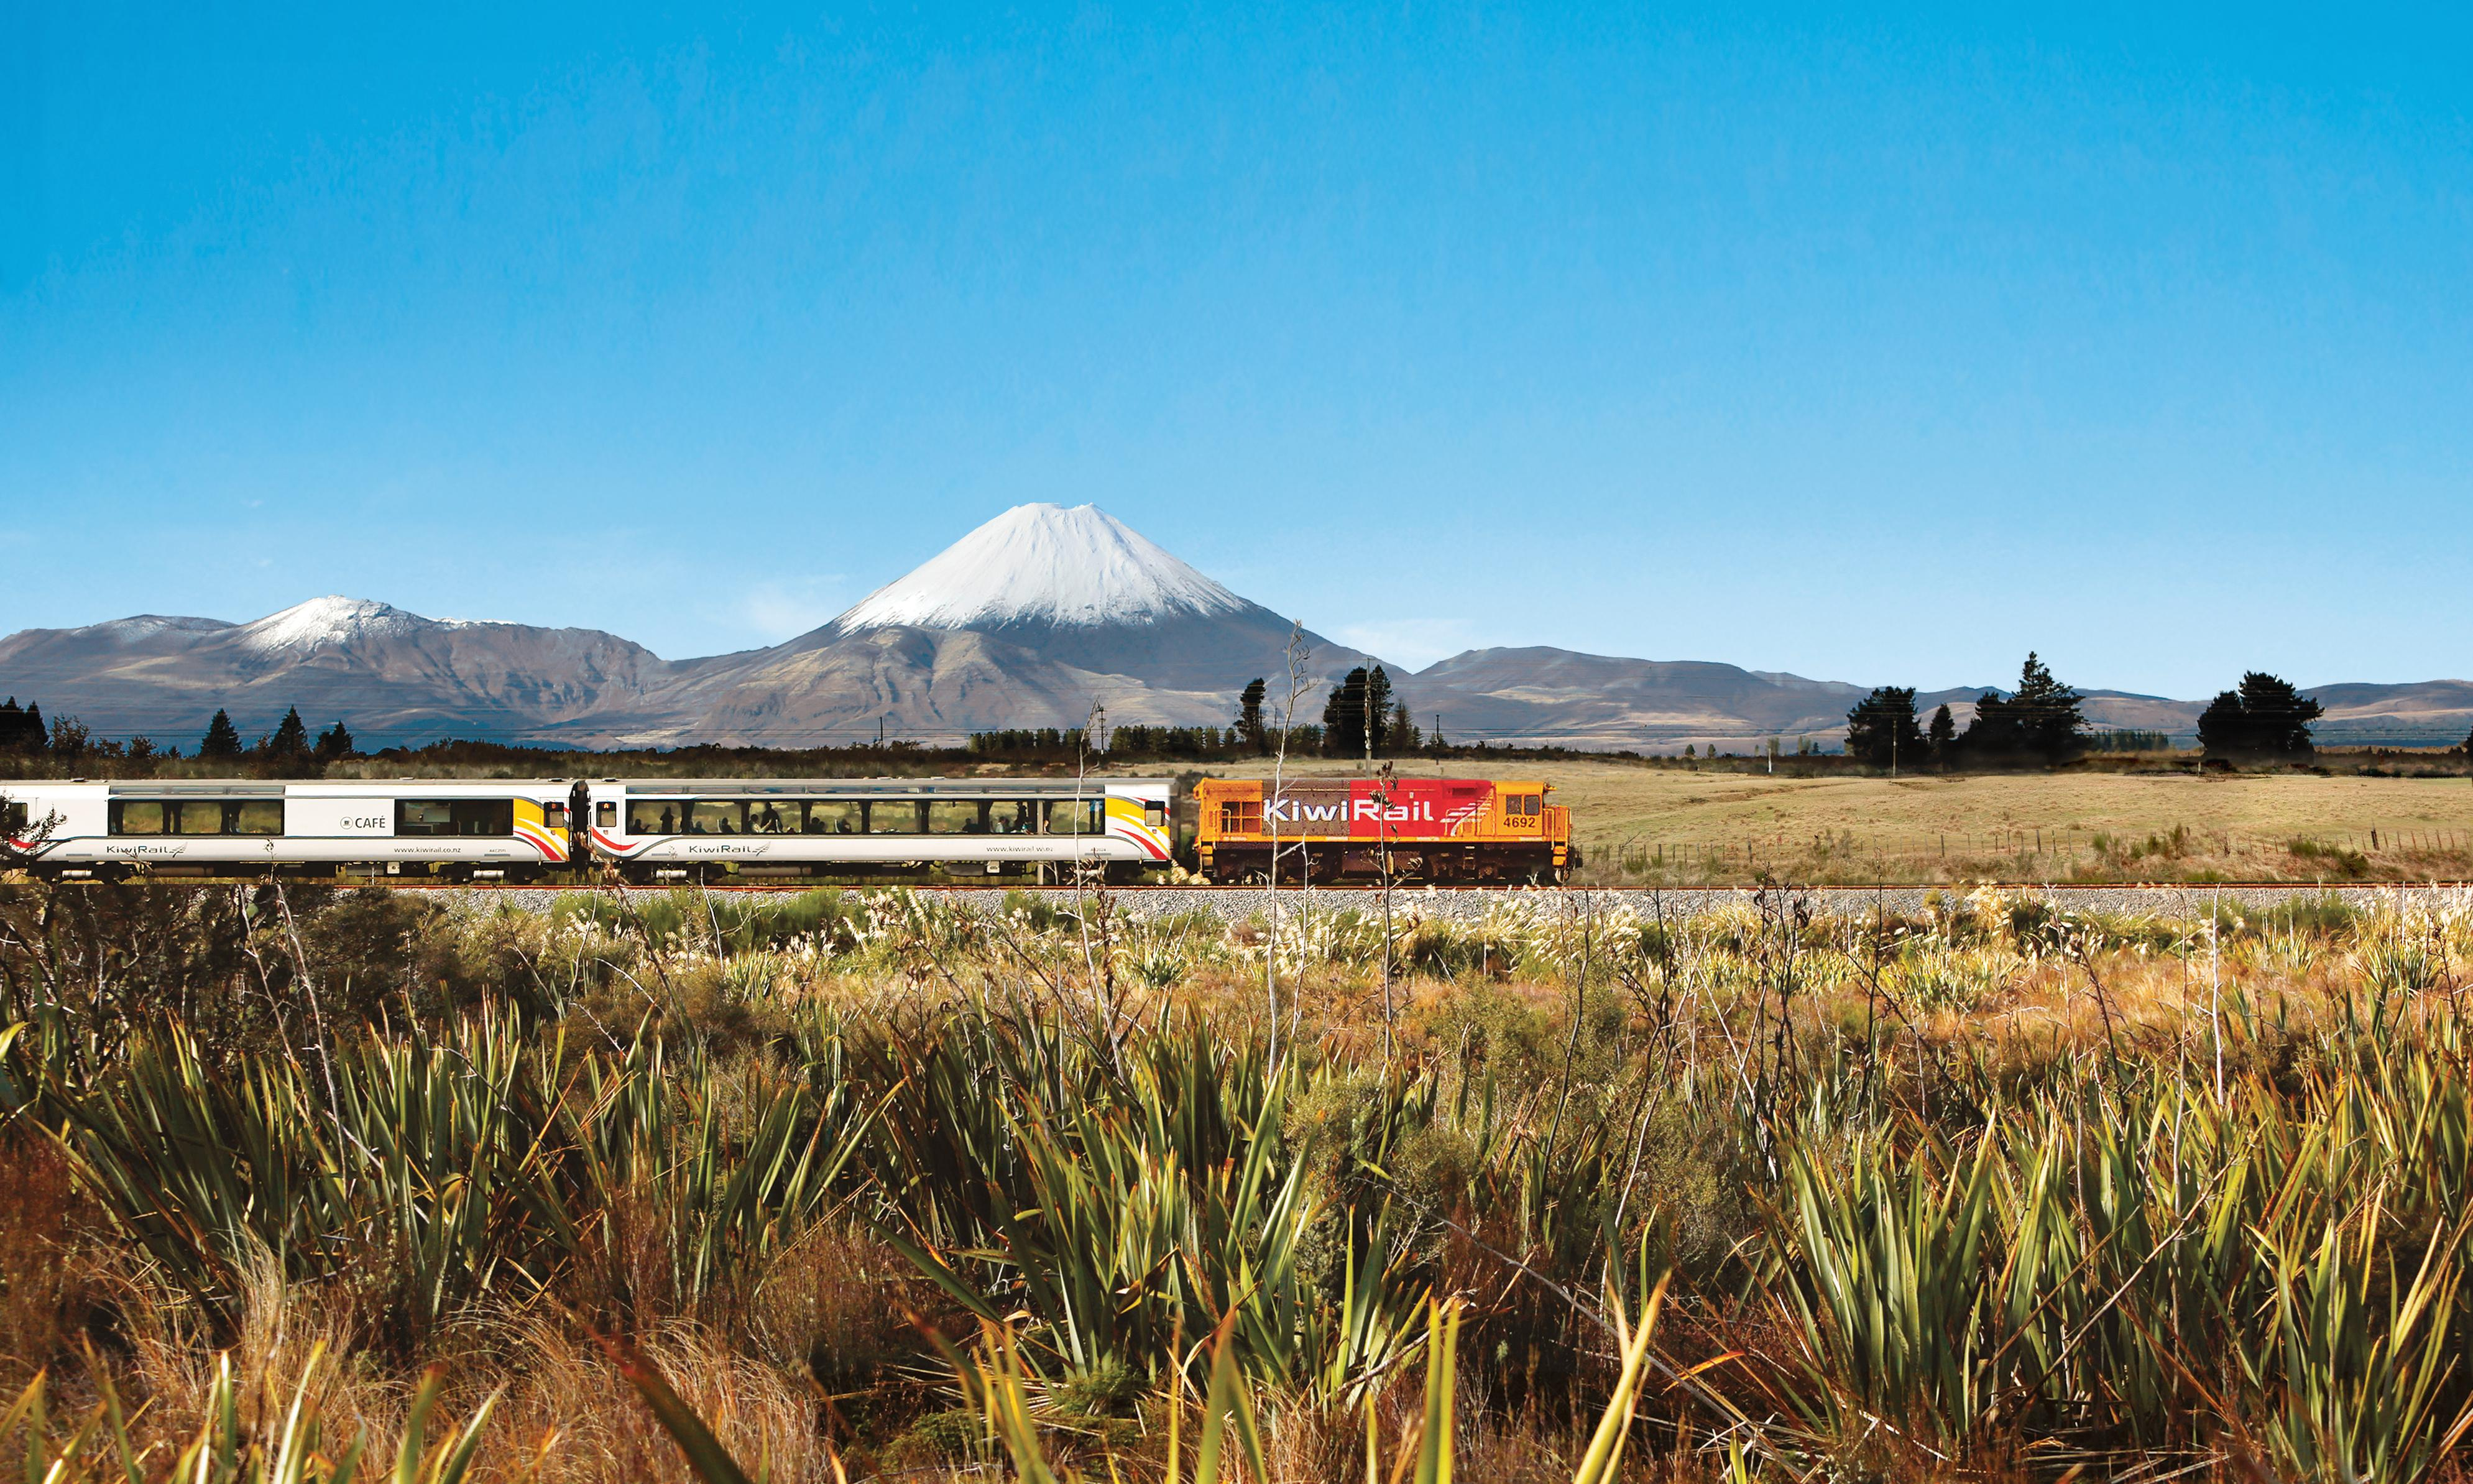 Passing panorama: New Zealand's glory from a train window